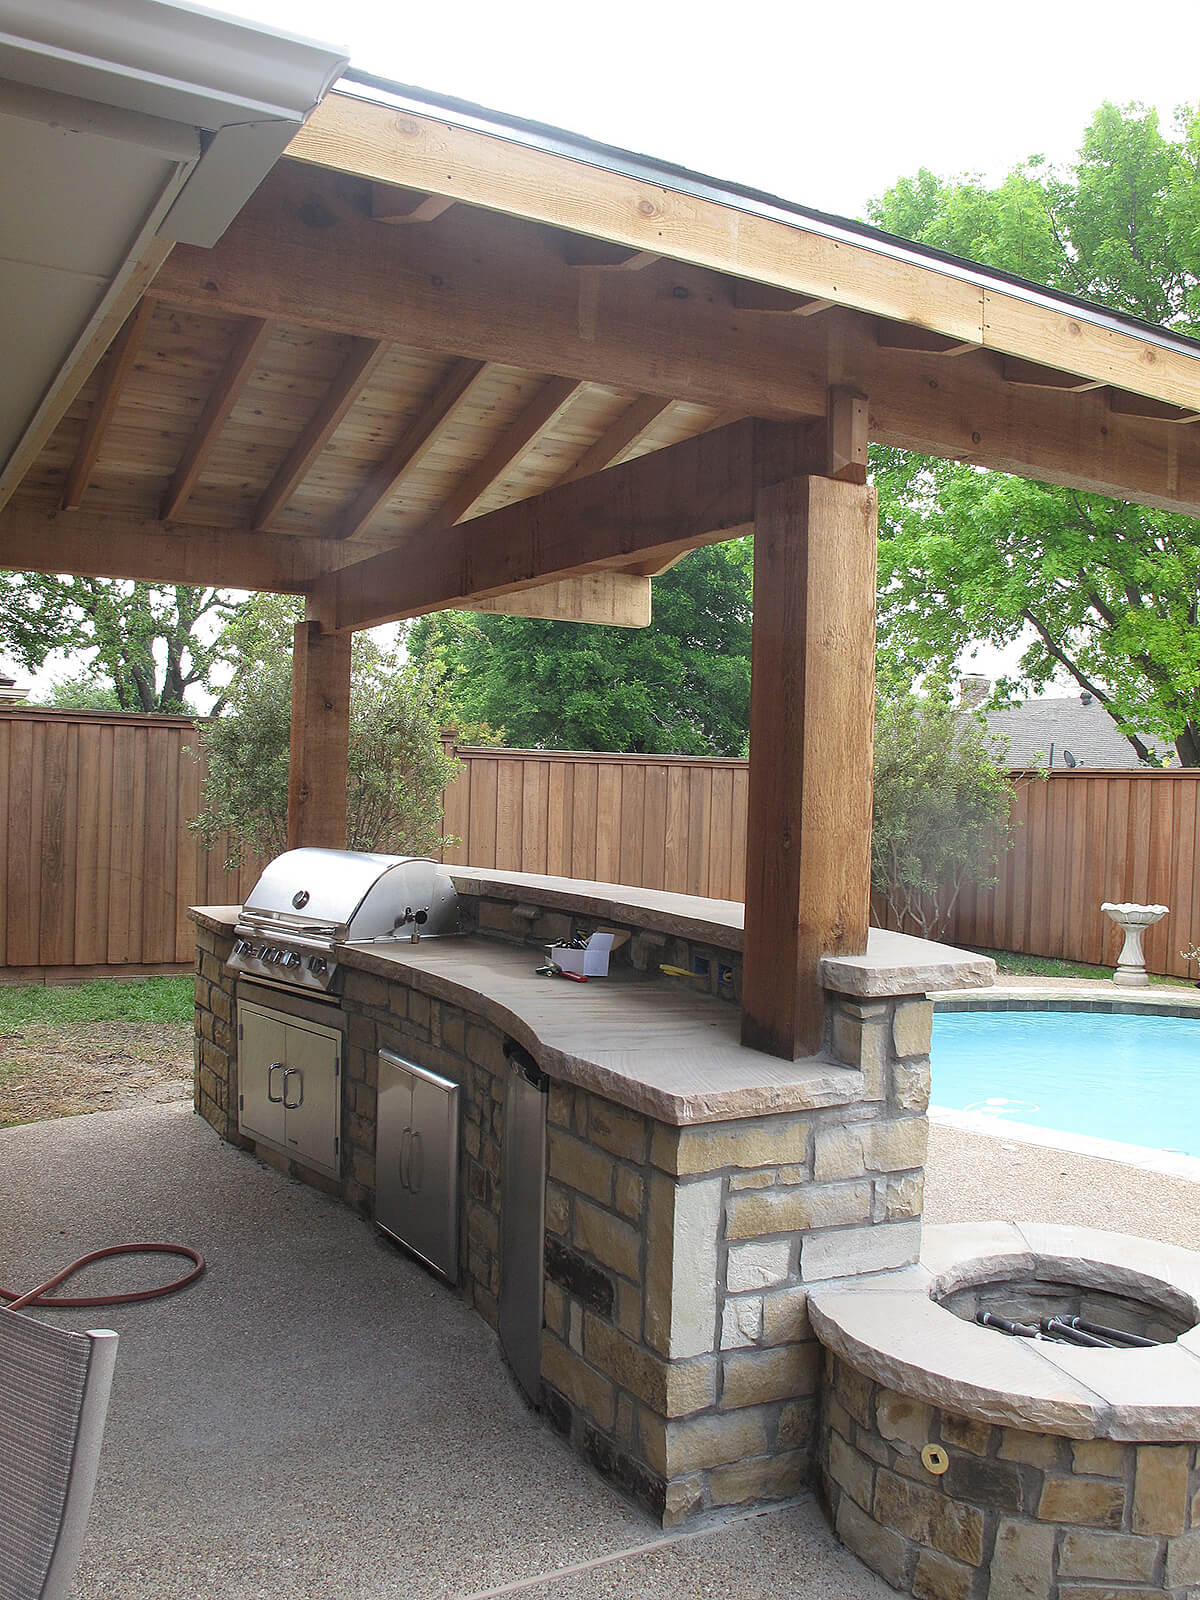 27 Best Outdoor Kitchen Ideas and Designs for 2020 on Small Backyard Bar Ideas id=59773